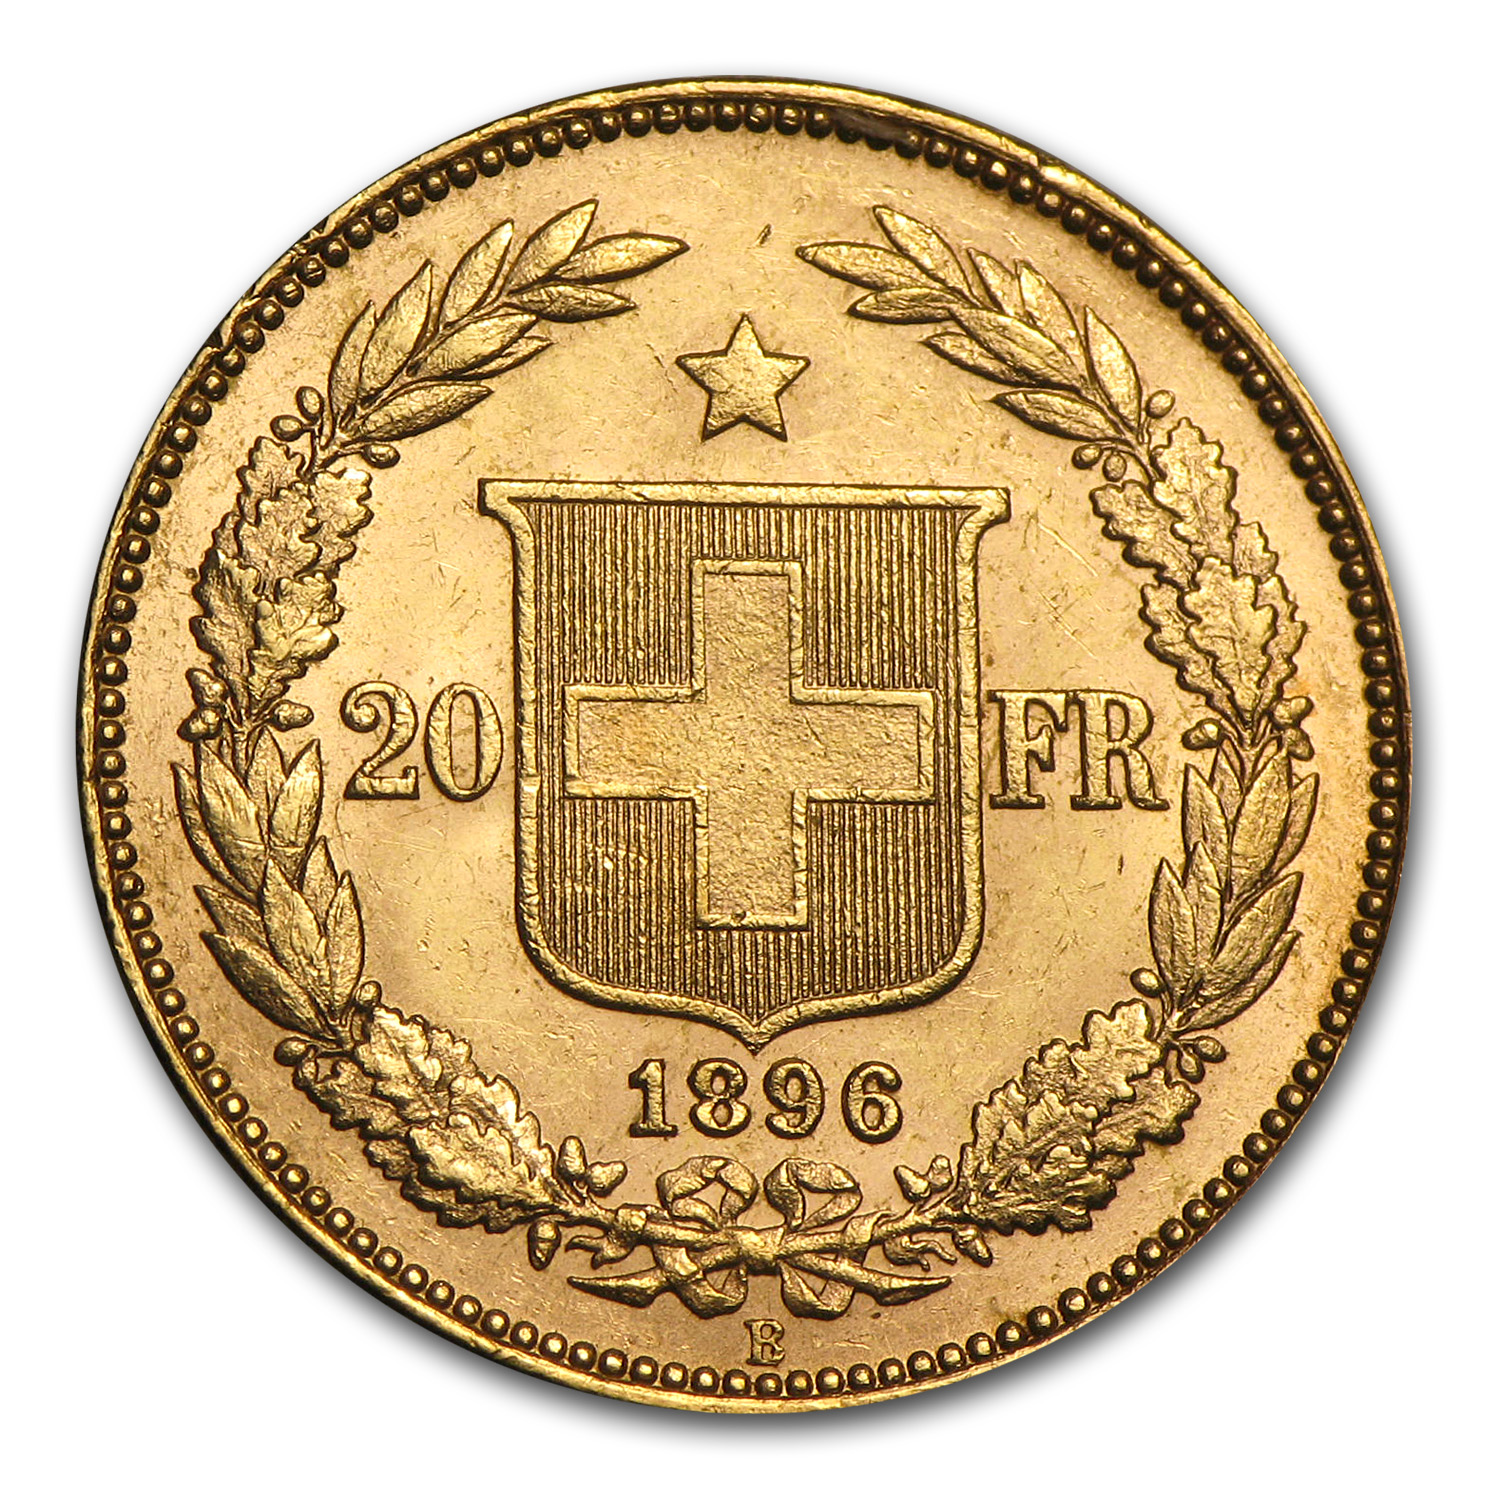 Switzerland 1883-1896 Gold 20 Francs (Extra Fine or Better)